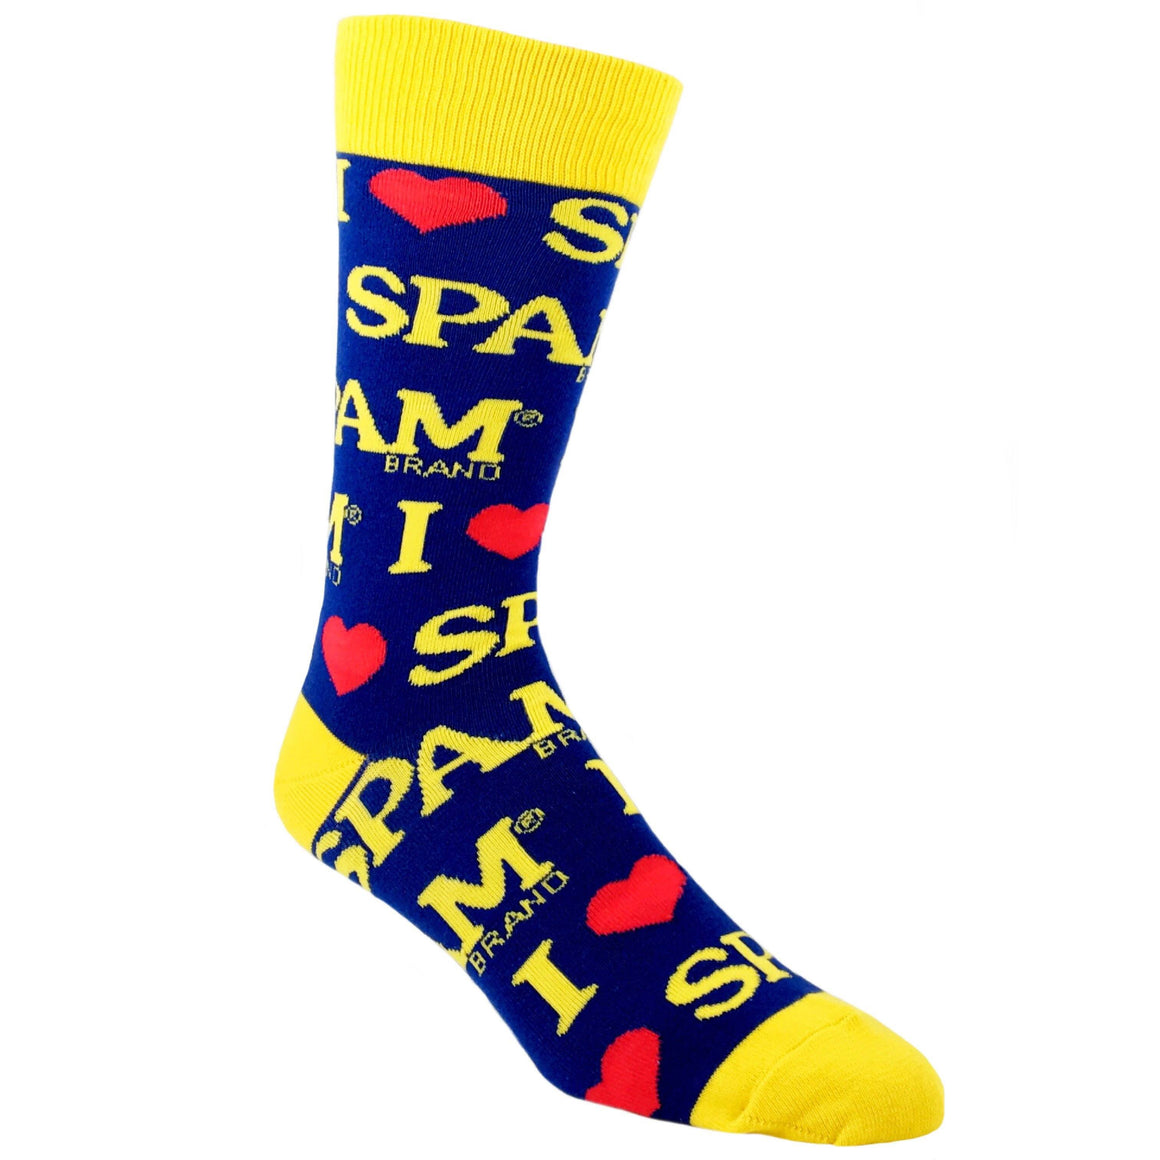 Socks - I Heart SPAM Food Socks